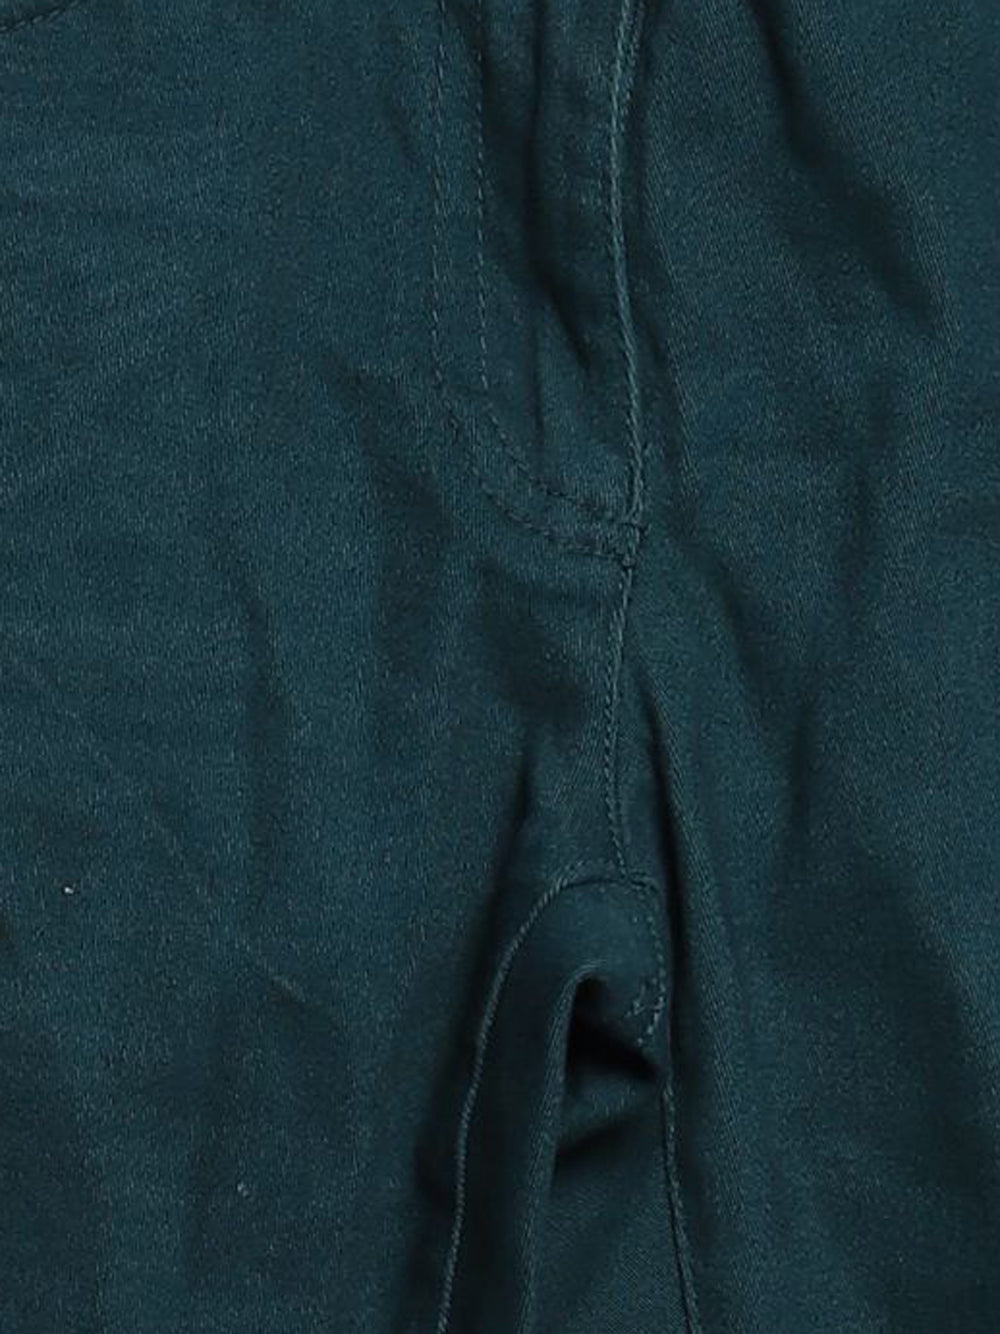 Detail photo of Preloved Colours Blue Woman's trousers - size 12/L